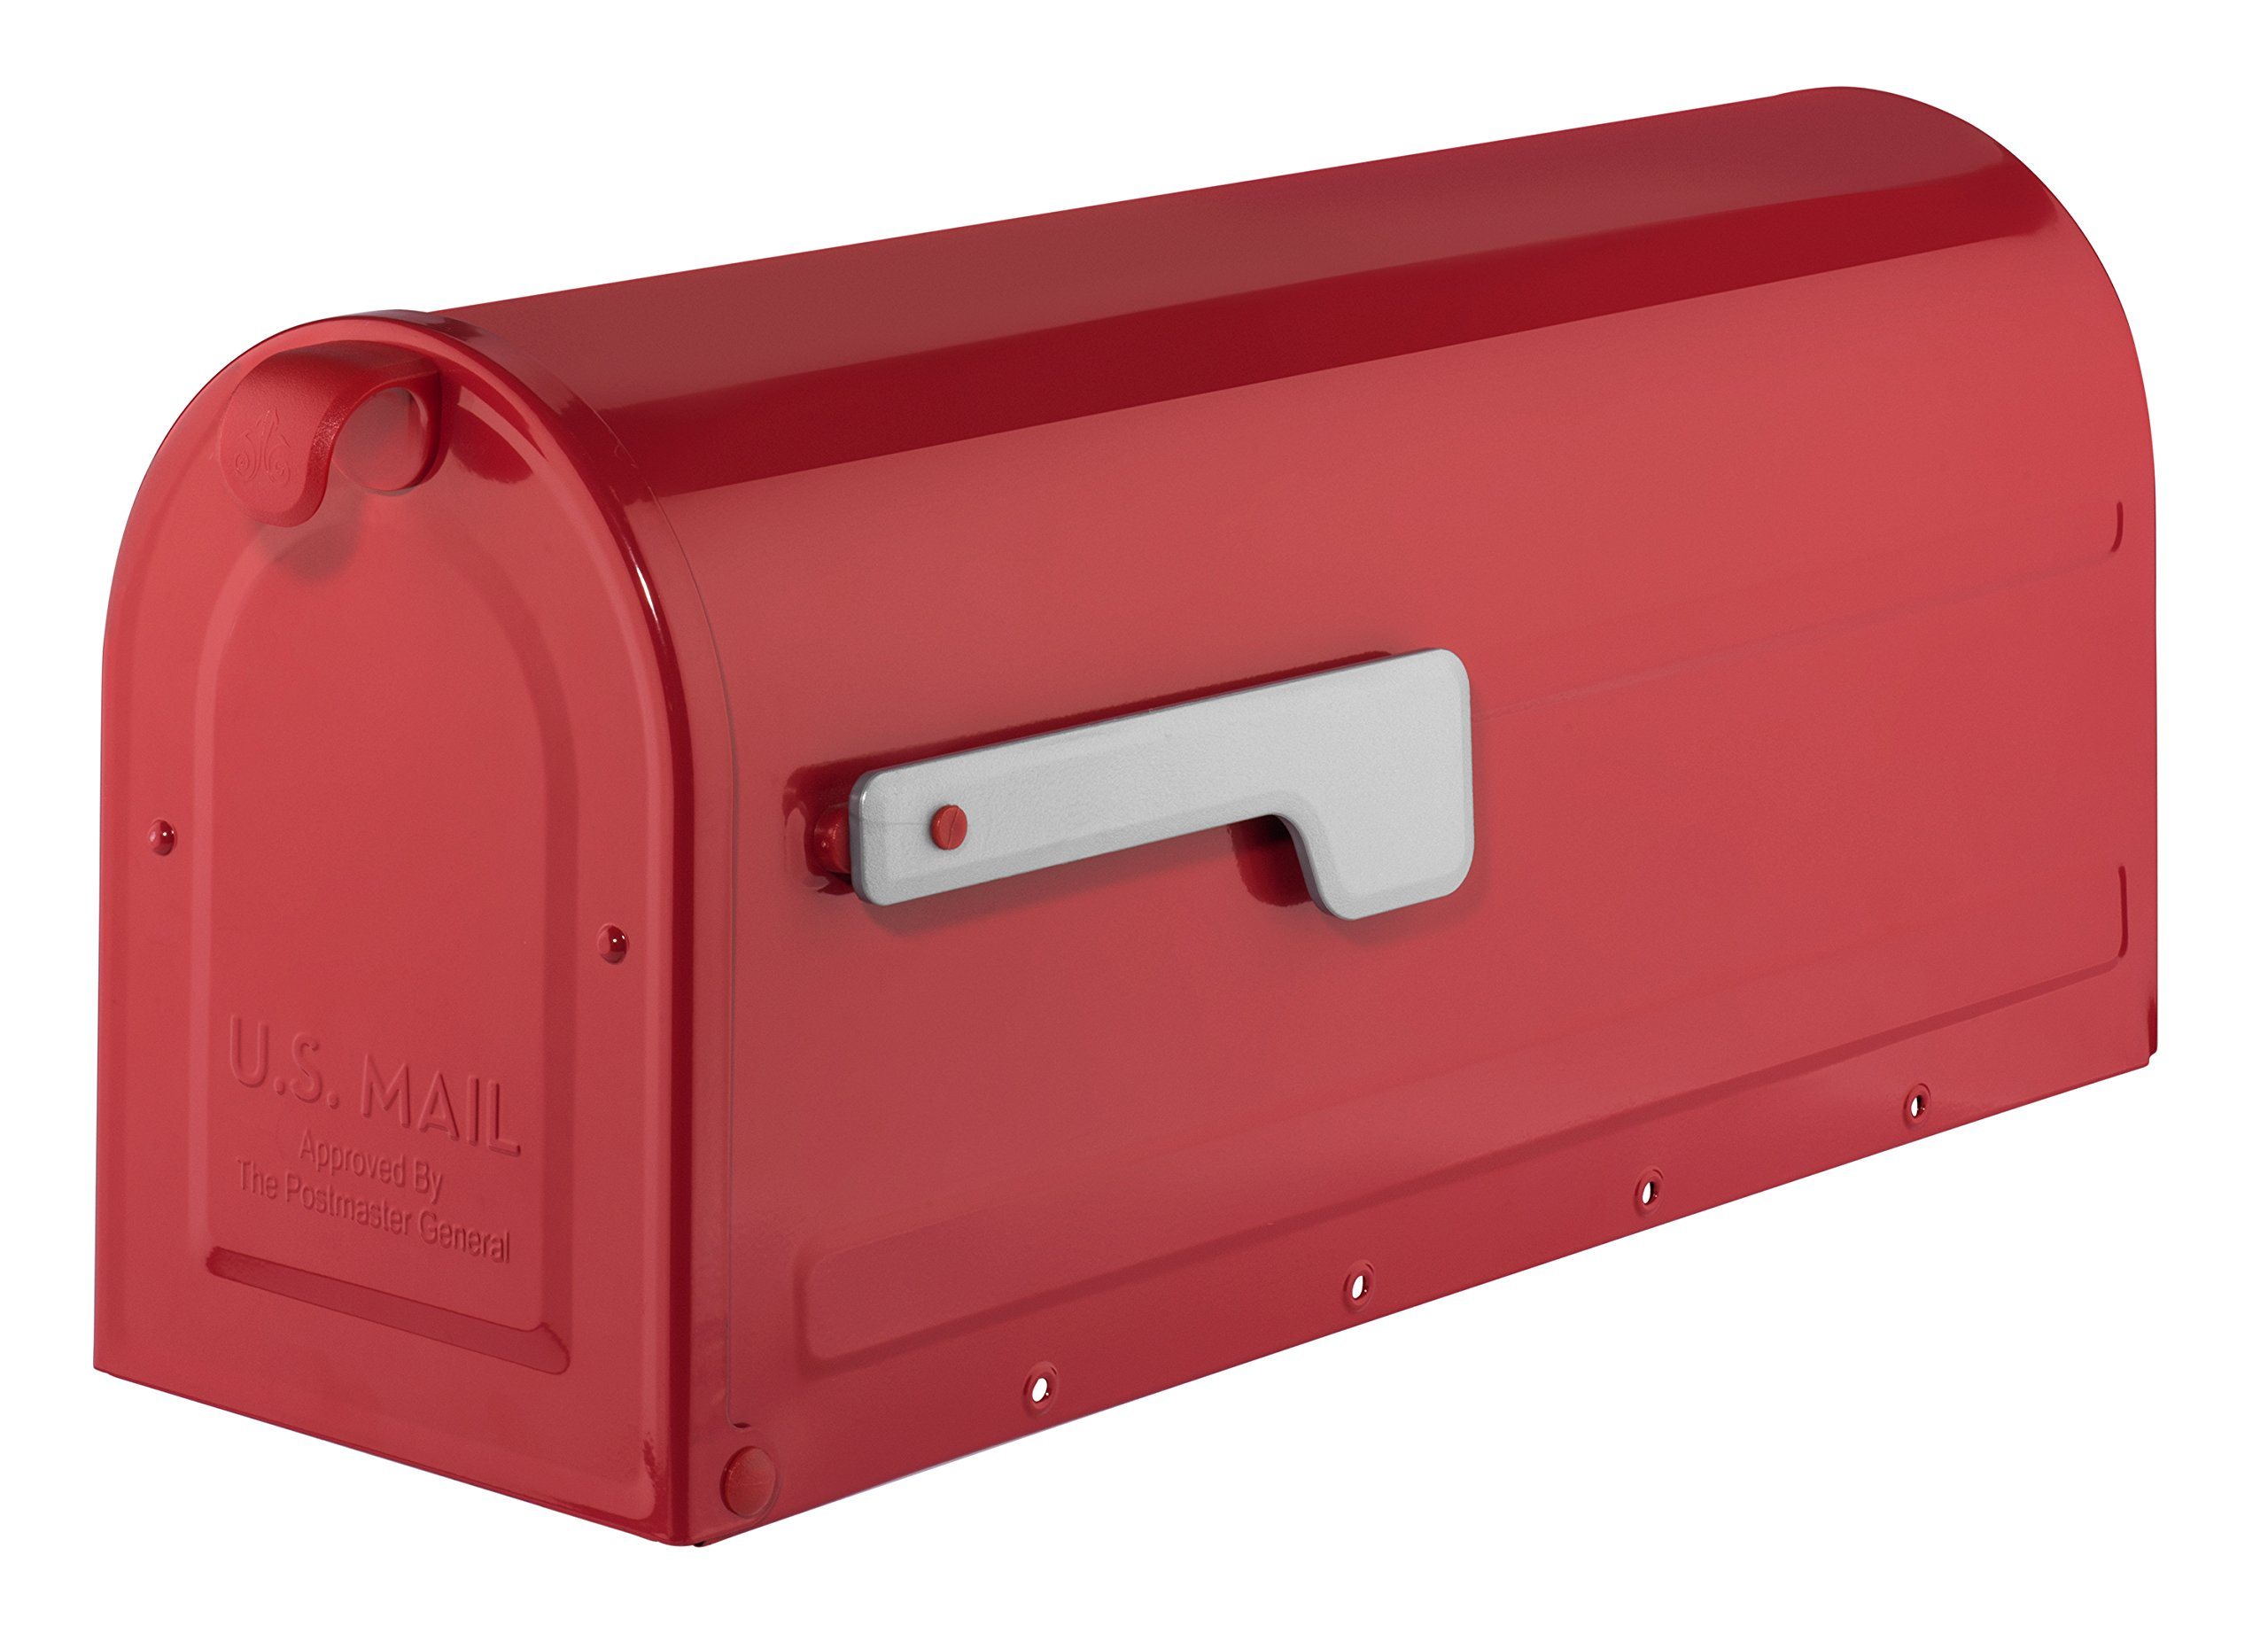 Architectural Mailboxes 7600R MB1 Post Mount Mailbox Red with Silver Flag MB1 Post Mount Mailbox, Medium